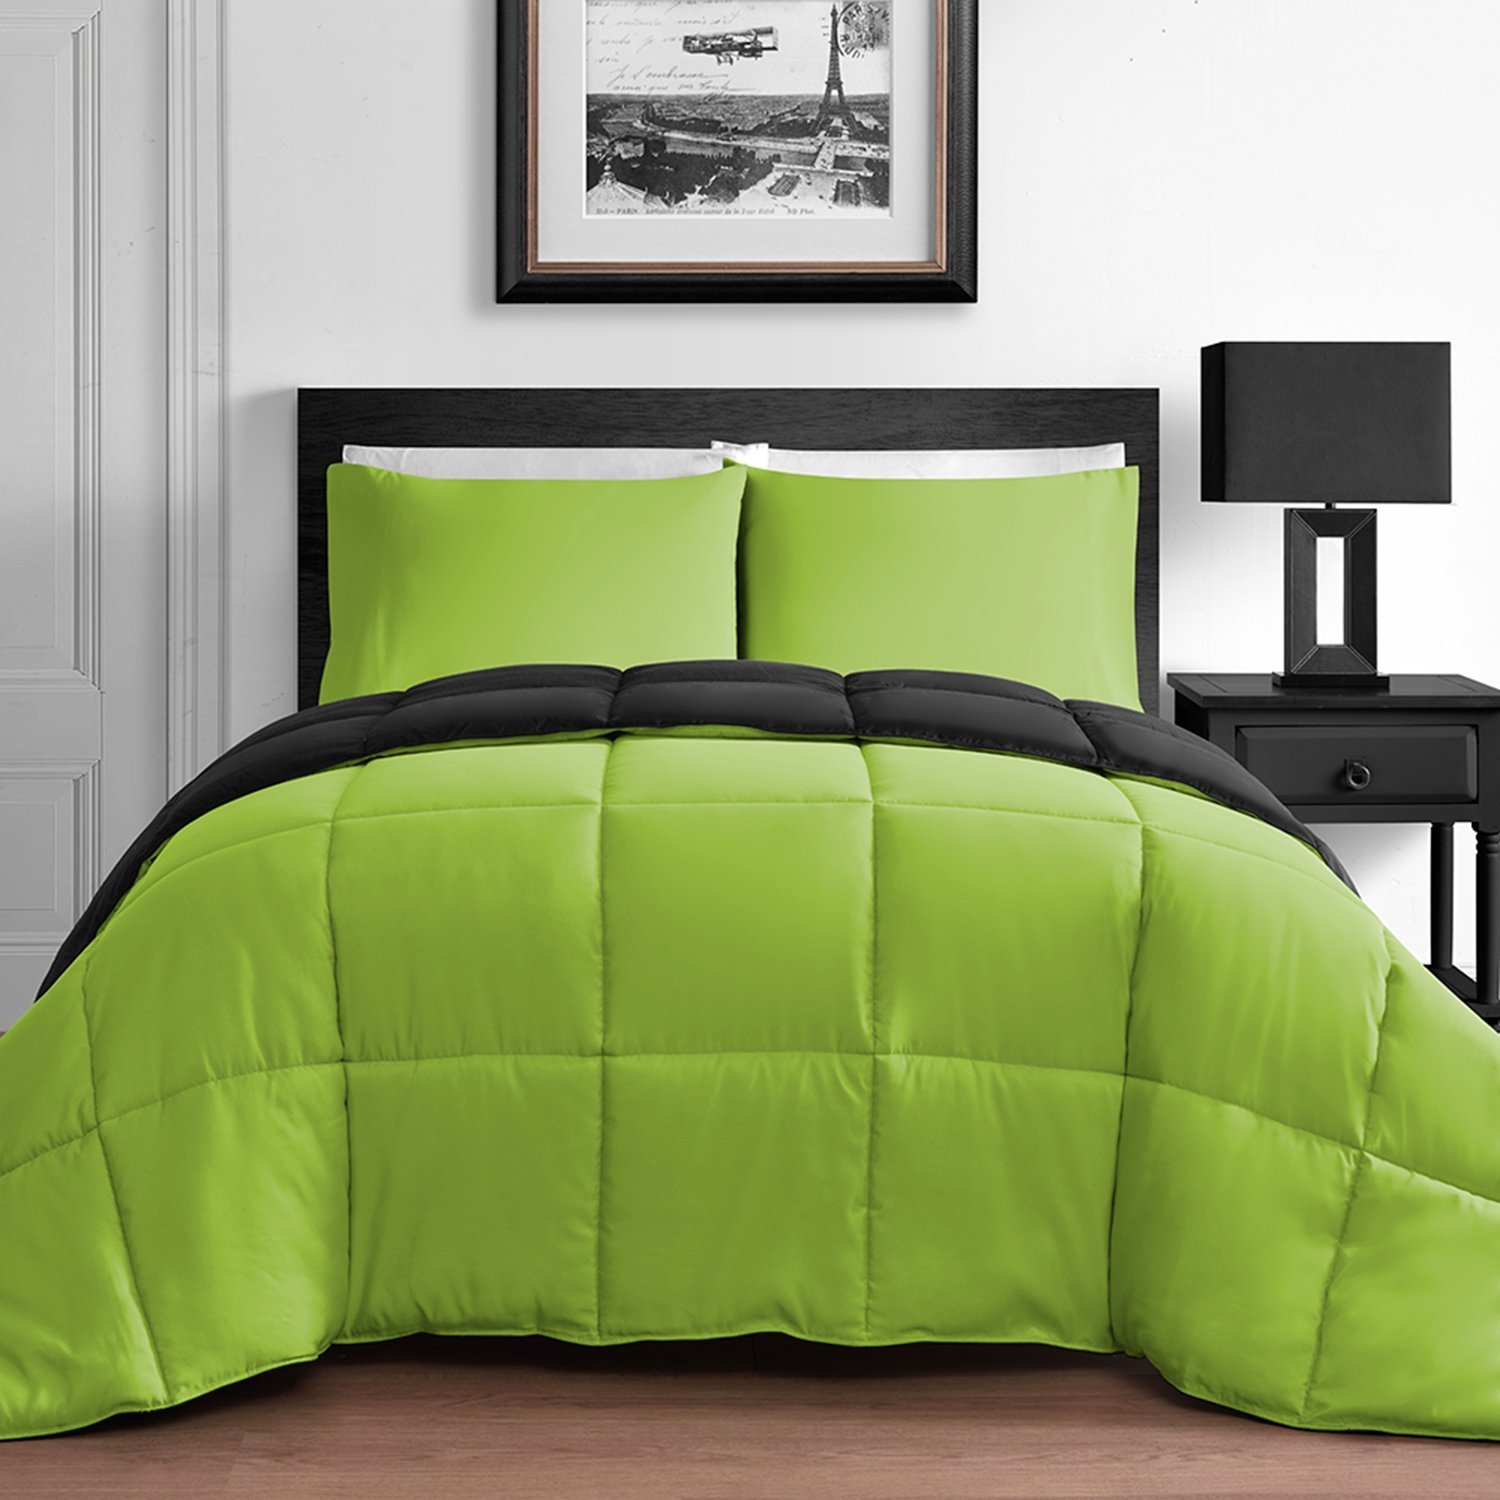 Modern 3 Piece King & Queen Home Reversible Microfiber Comforter Set in Lime Green & Black